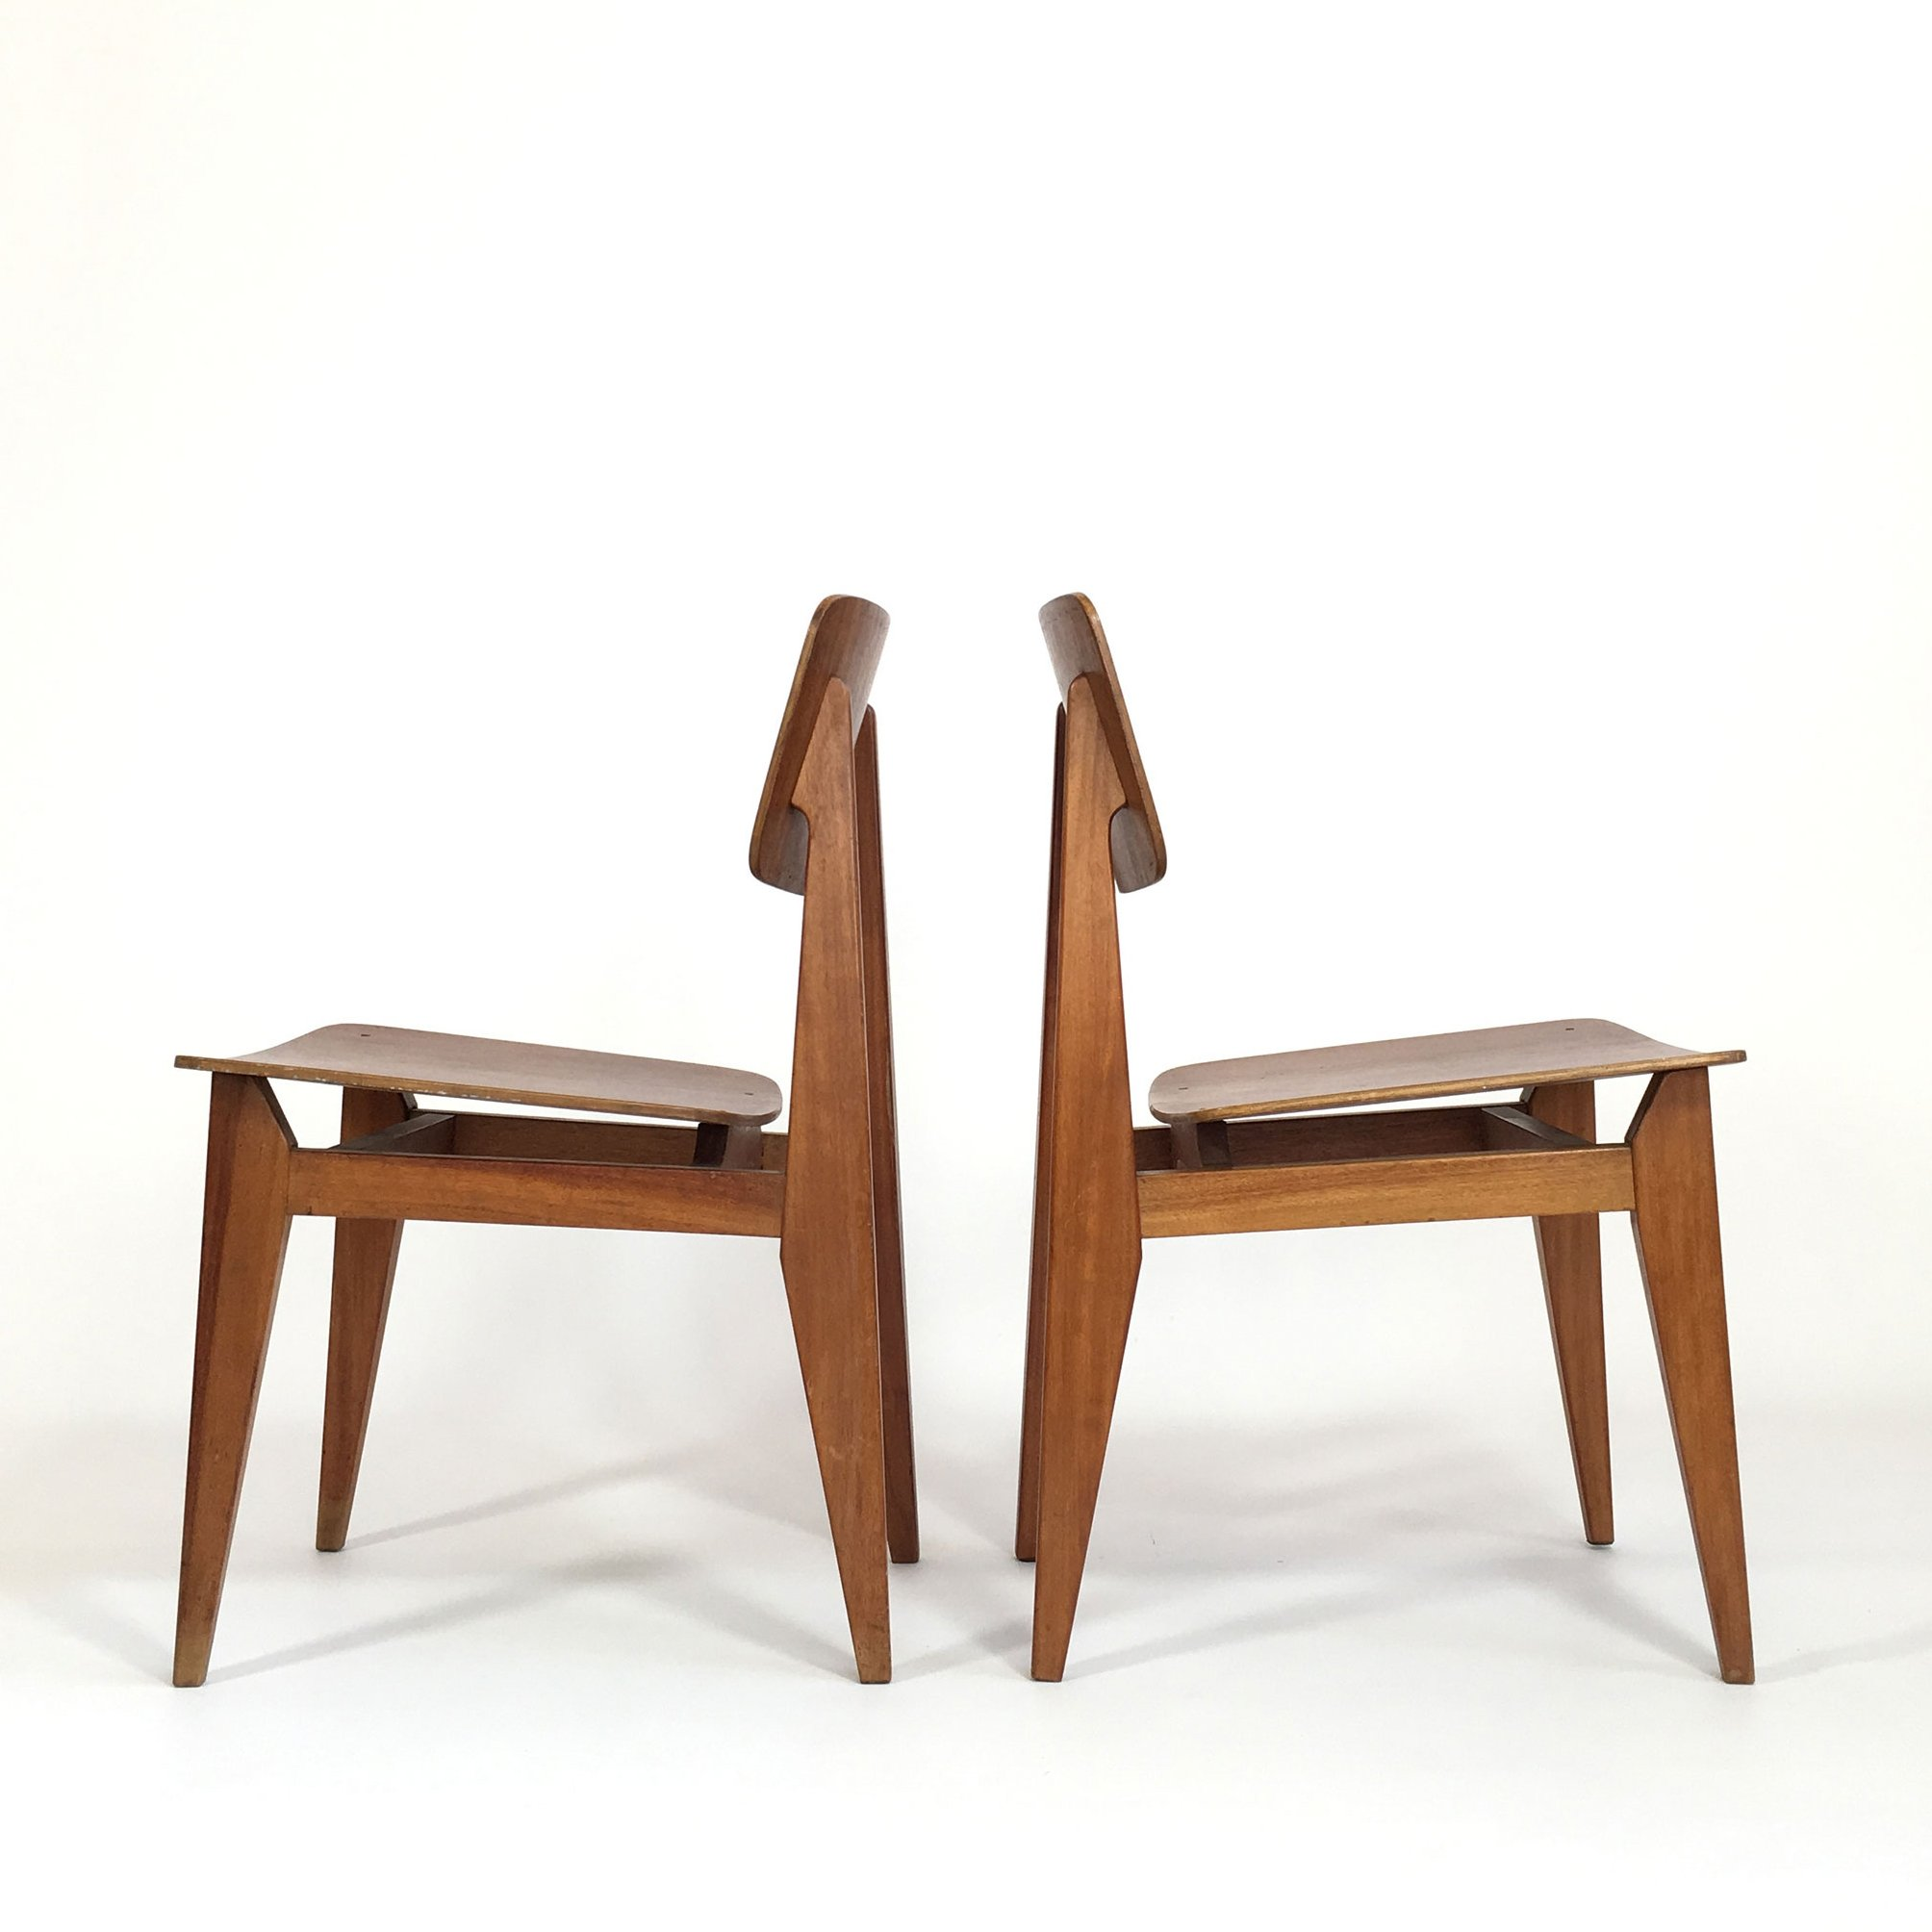 Pair Of CD Dinner Chairs By Marcel Gascoin For ARHEC, 1950s